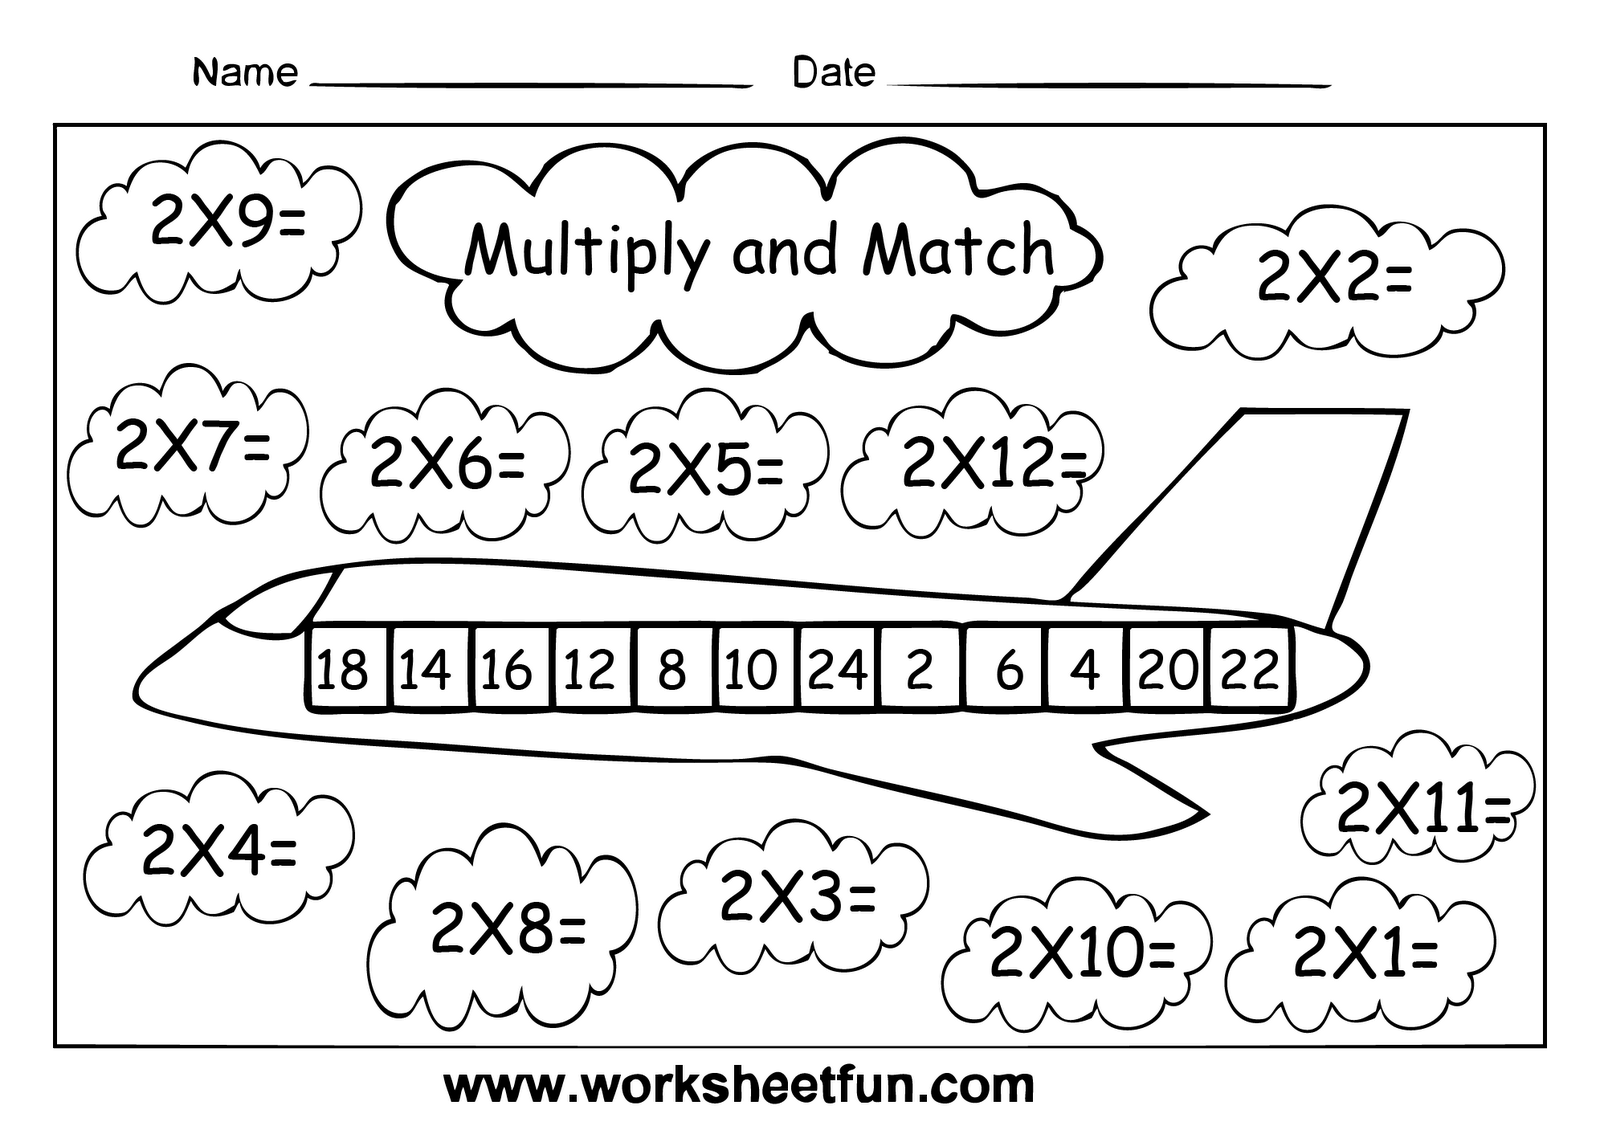 Worksheet 10001294 Multiplication Worksheets 4 Times Tables – Multiplication Worksheets 2 3 4 5 10